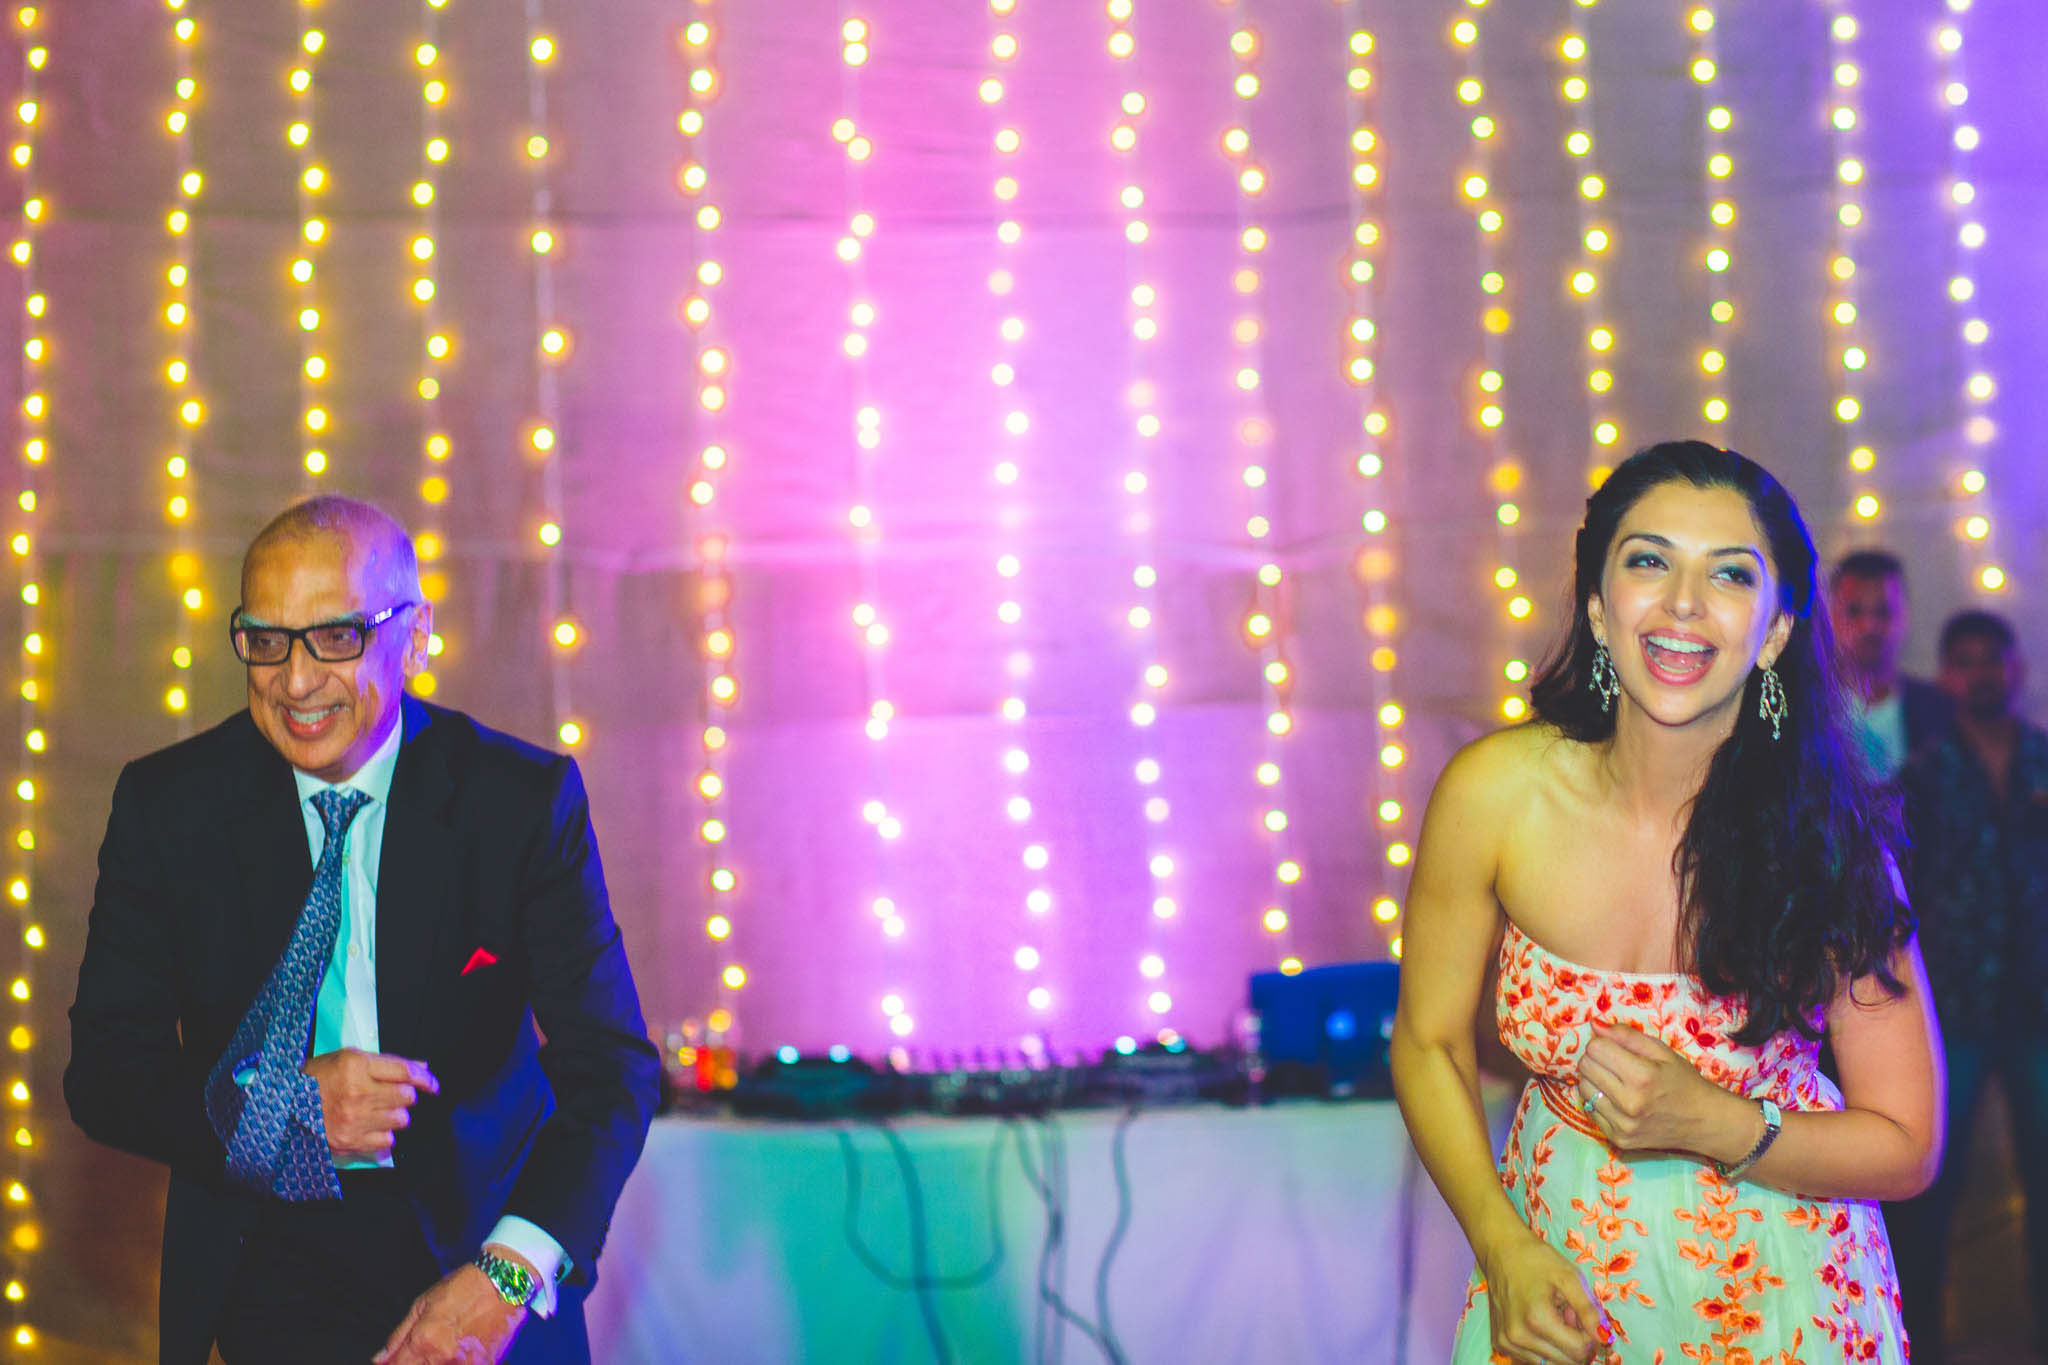 Big-Fat-Indian-Wedding-Destination-Goa-Cidade-de-goa-whatknot-candid-photography-138